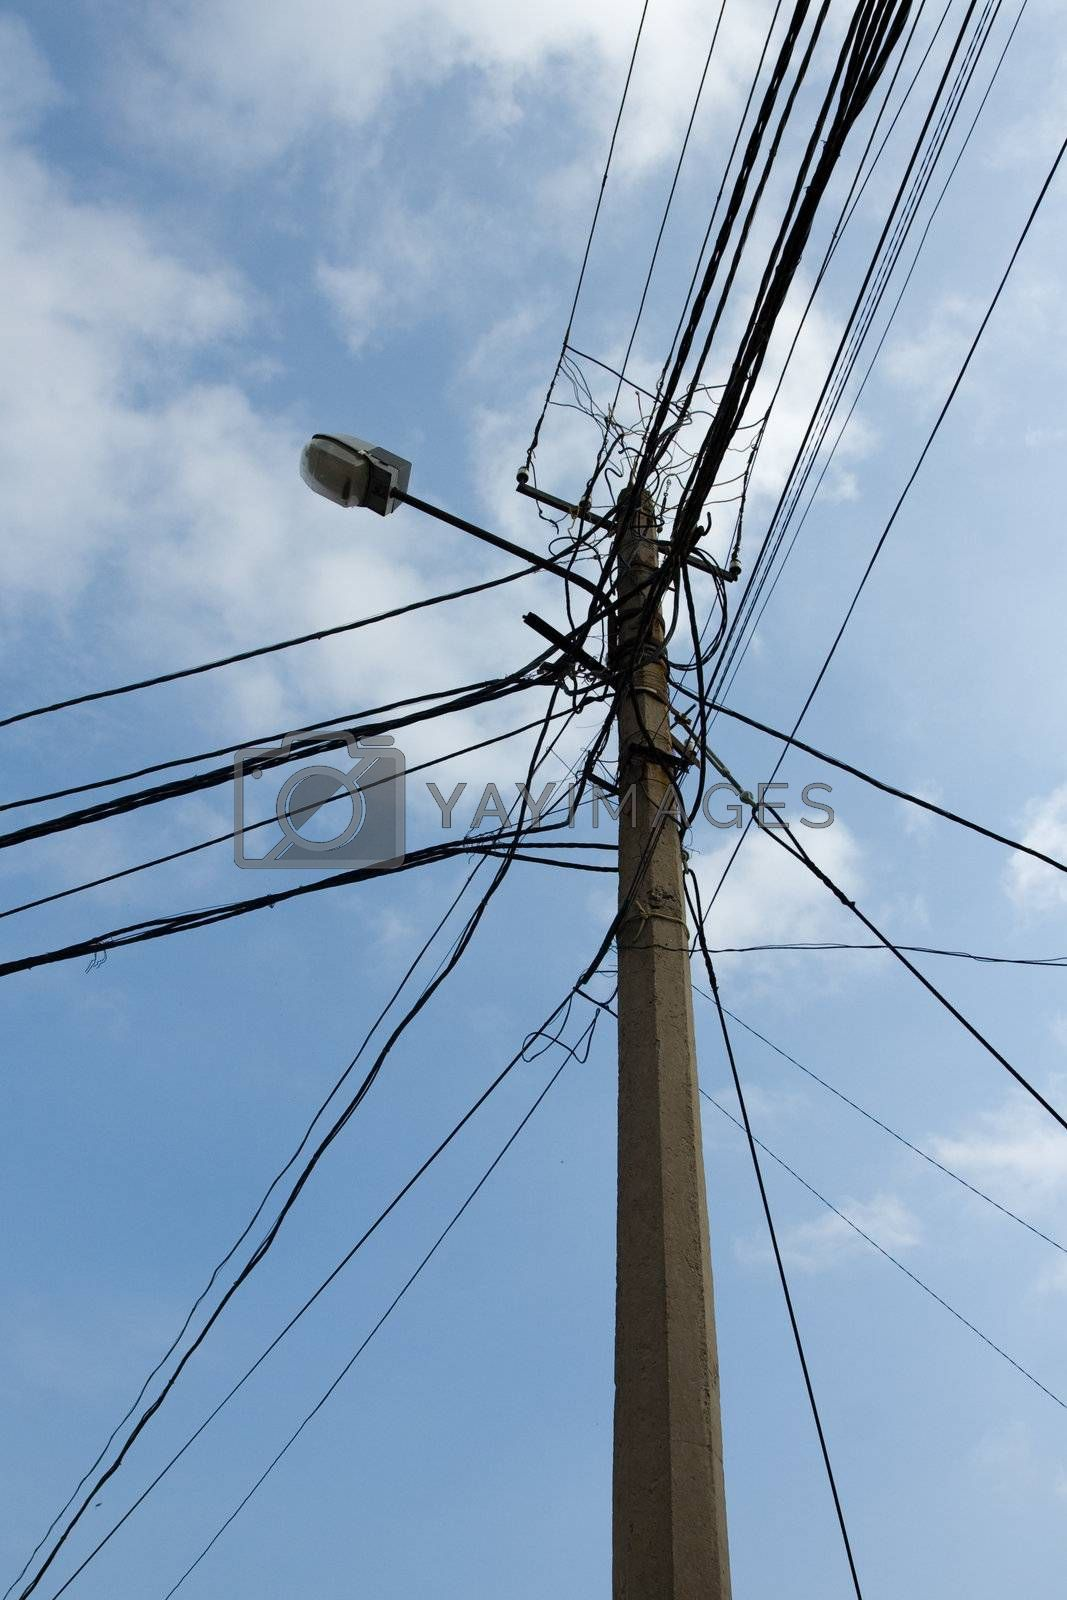 Lamp pole and tangled electric wires on the blue sky background. Vertical